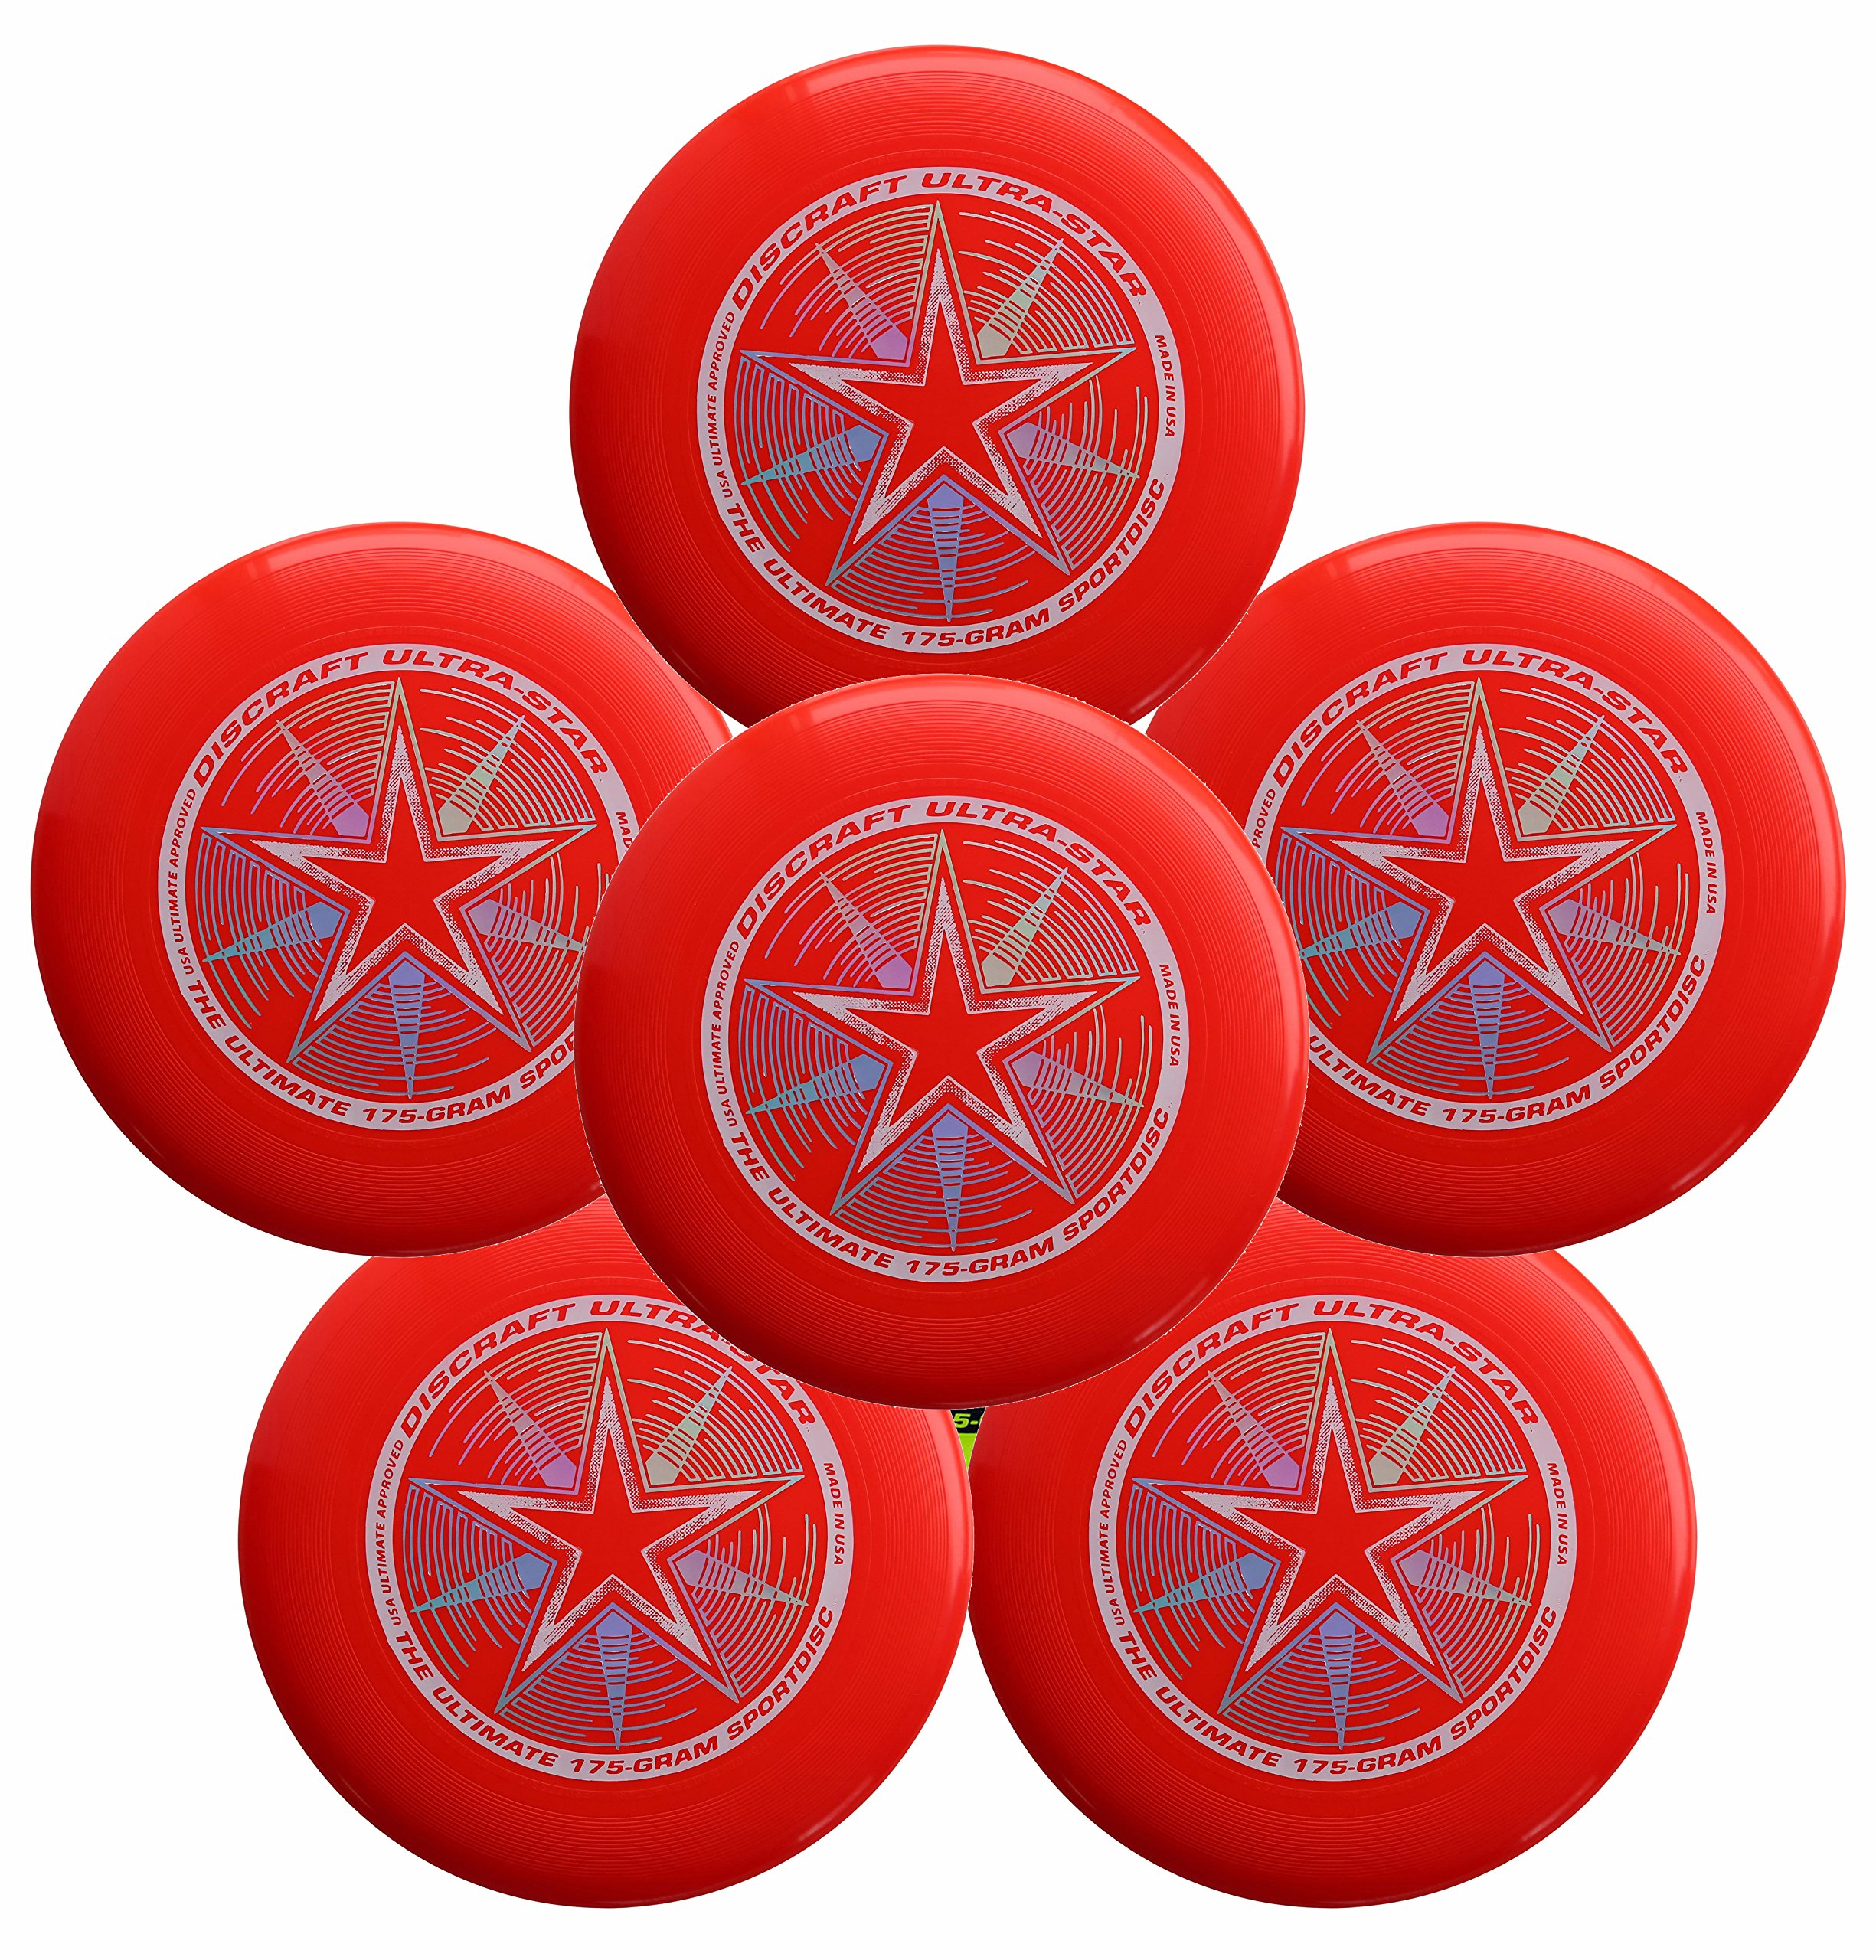 Discraft Ultra-Star 175g Ultimate Frisbee Sport Disc (6 Pack) Bright Red by Discraft